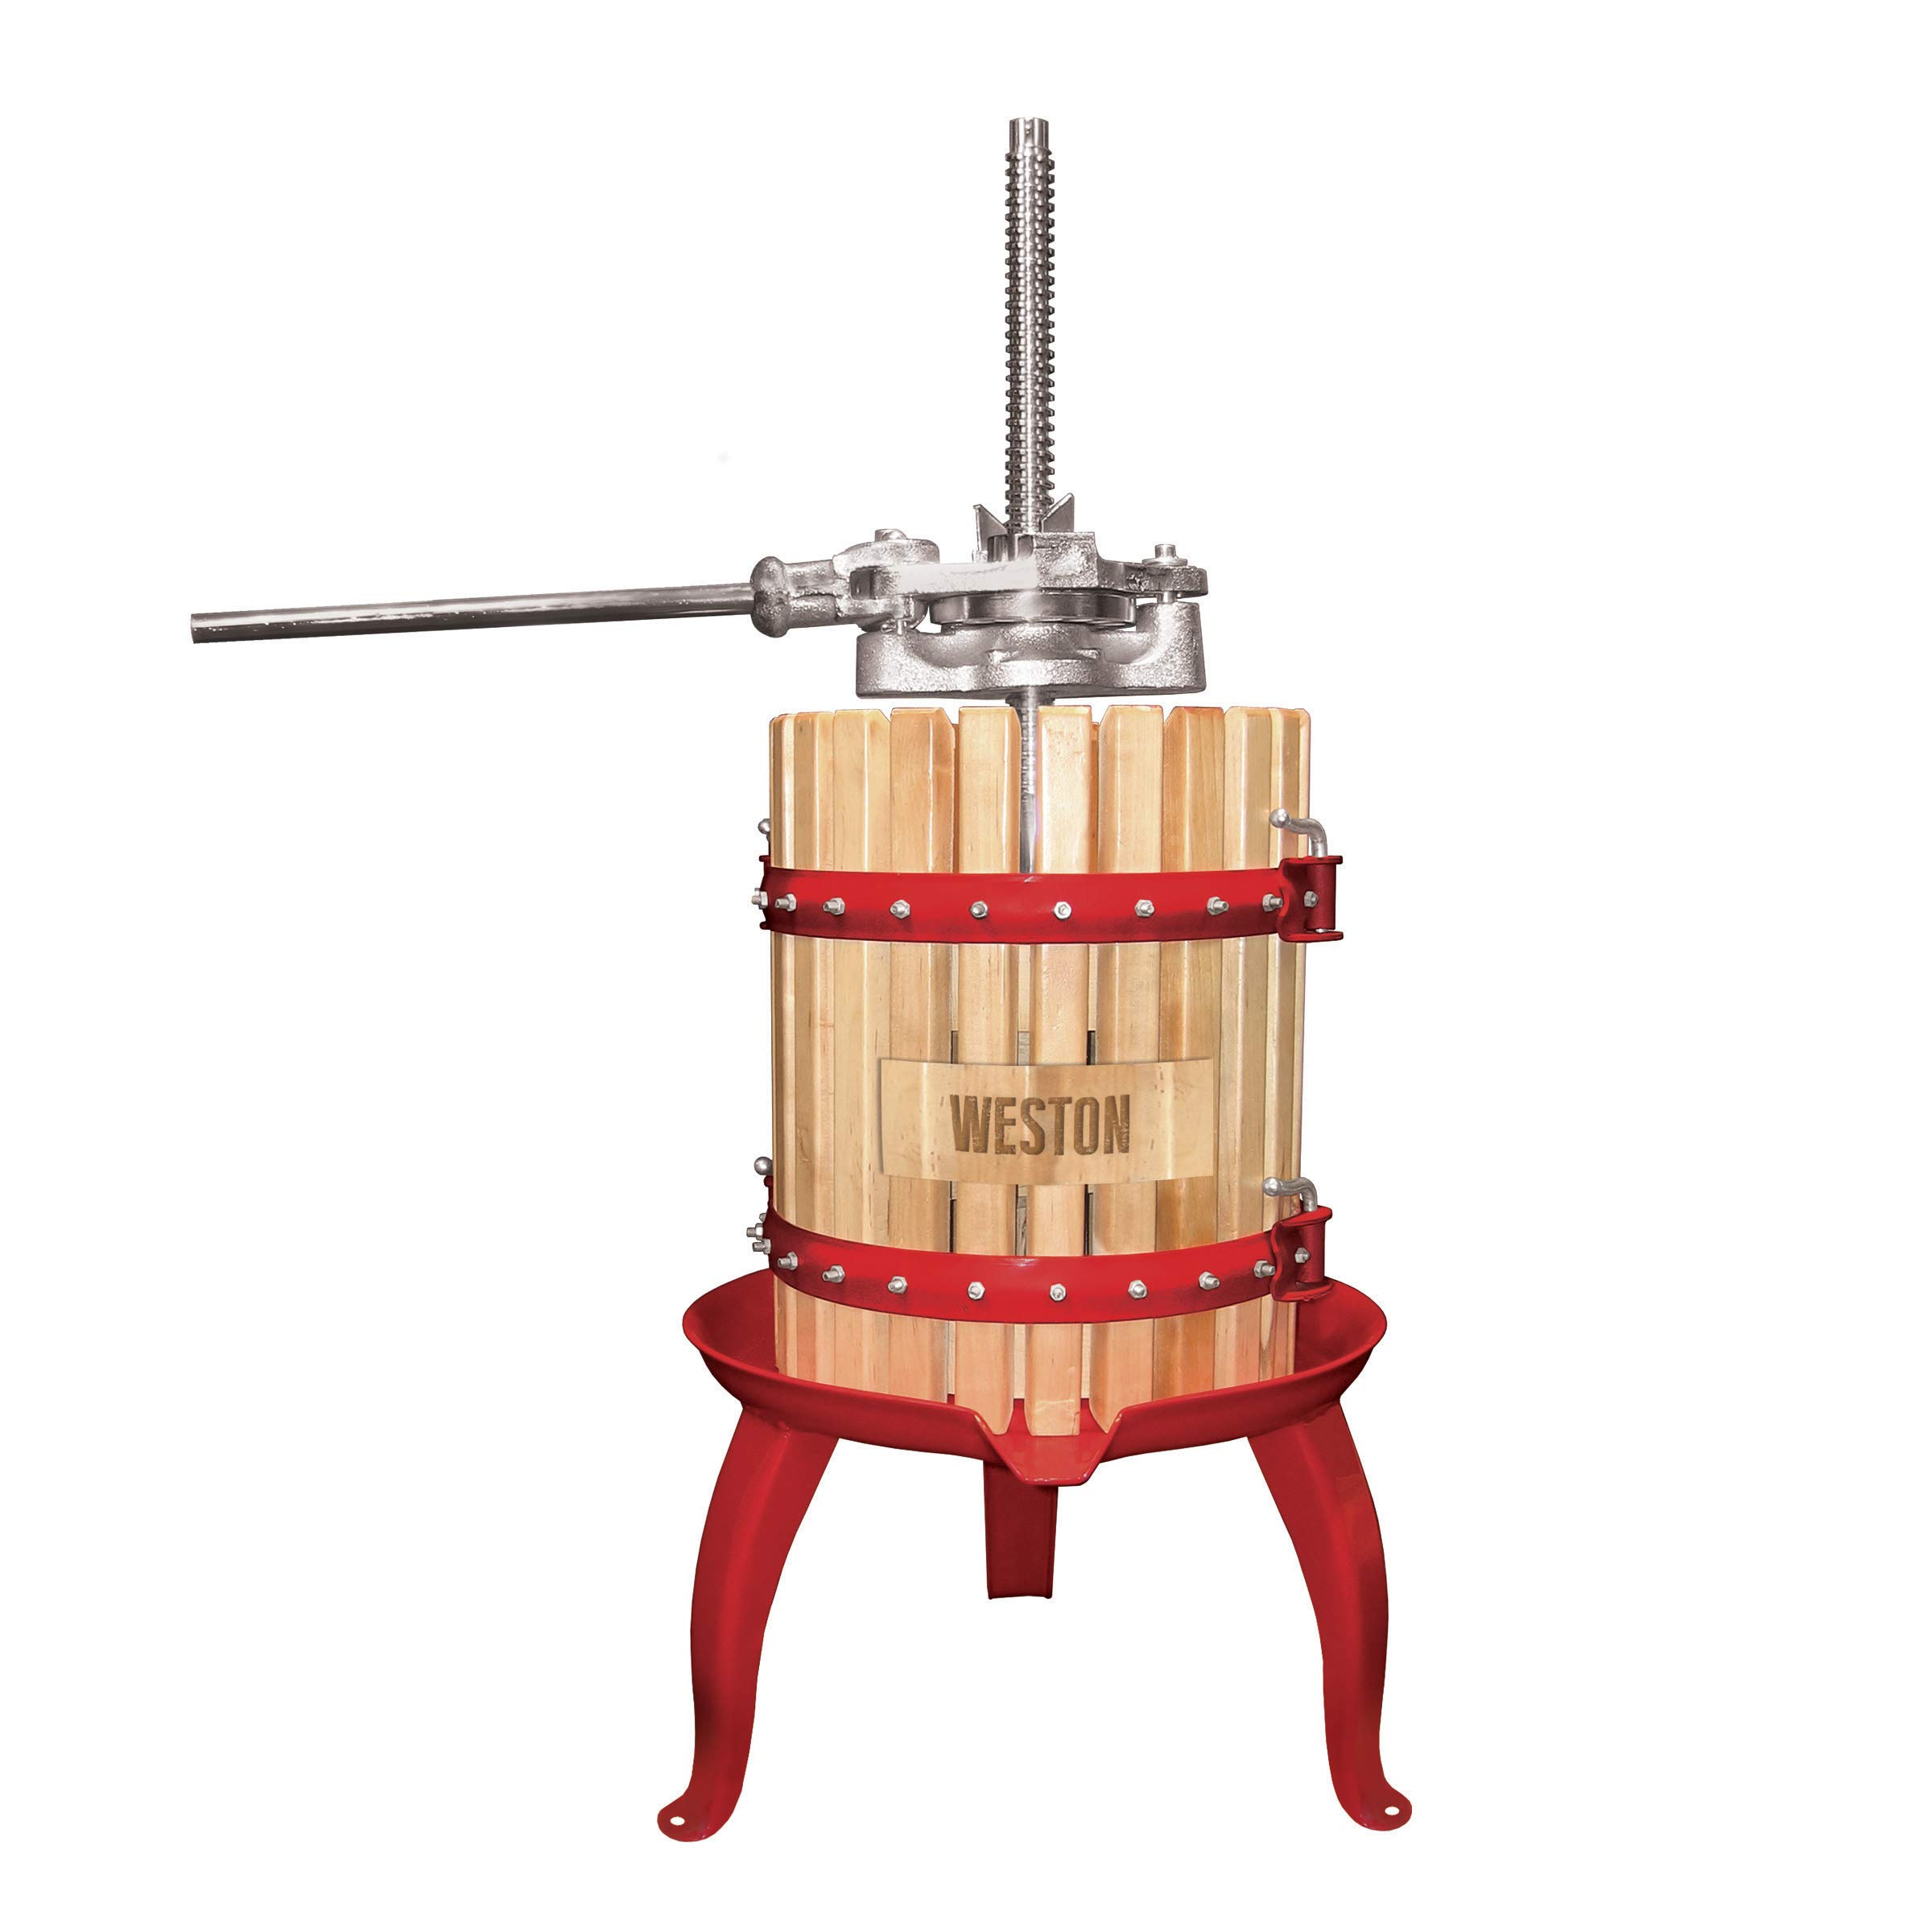 Weston 05-0101 4 Gallon Fruit and Wine Press, with Blocks, for for Juice and Cider by Weston